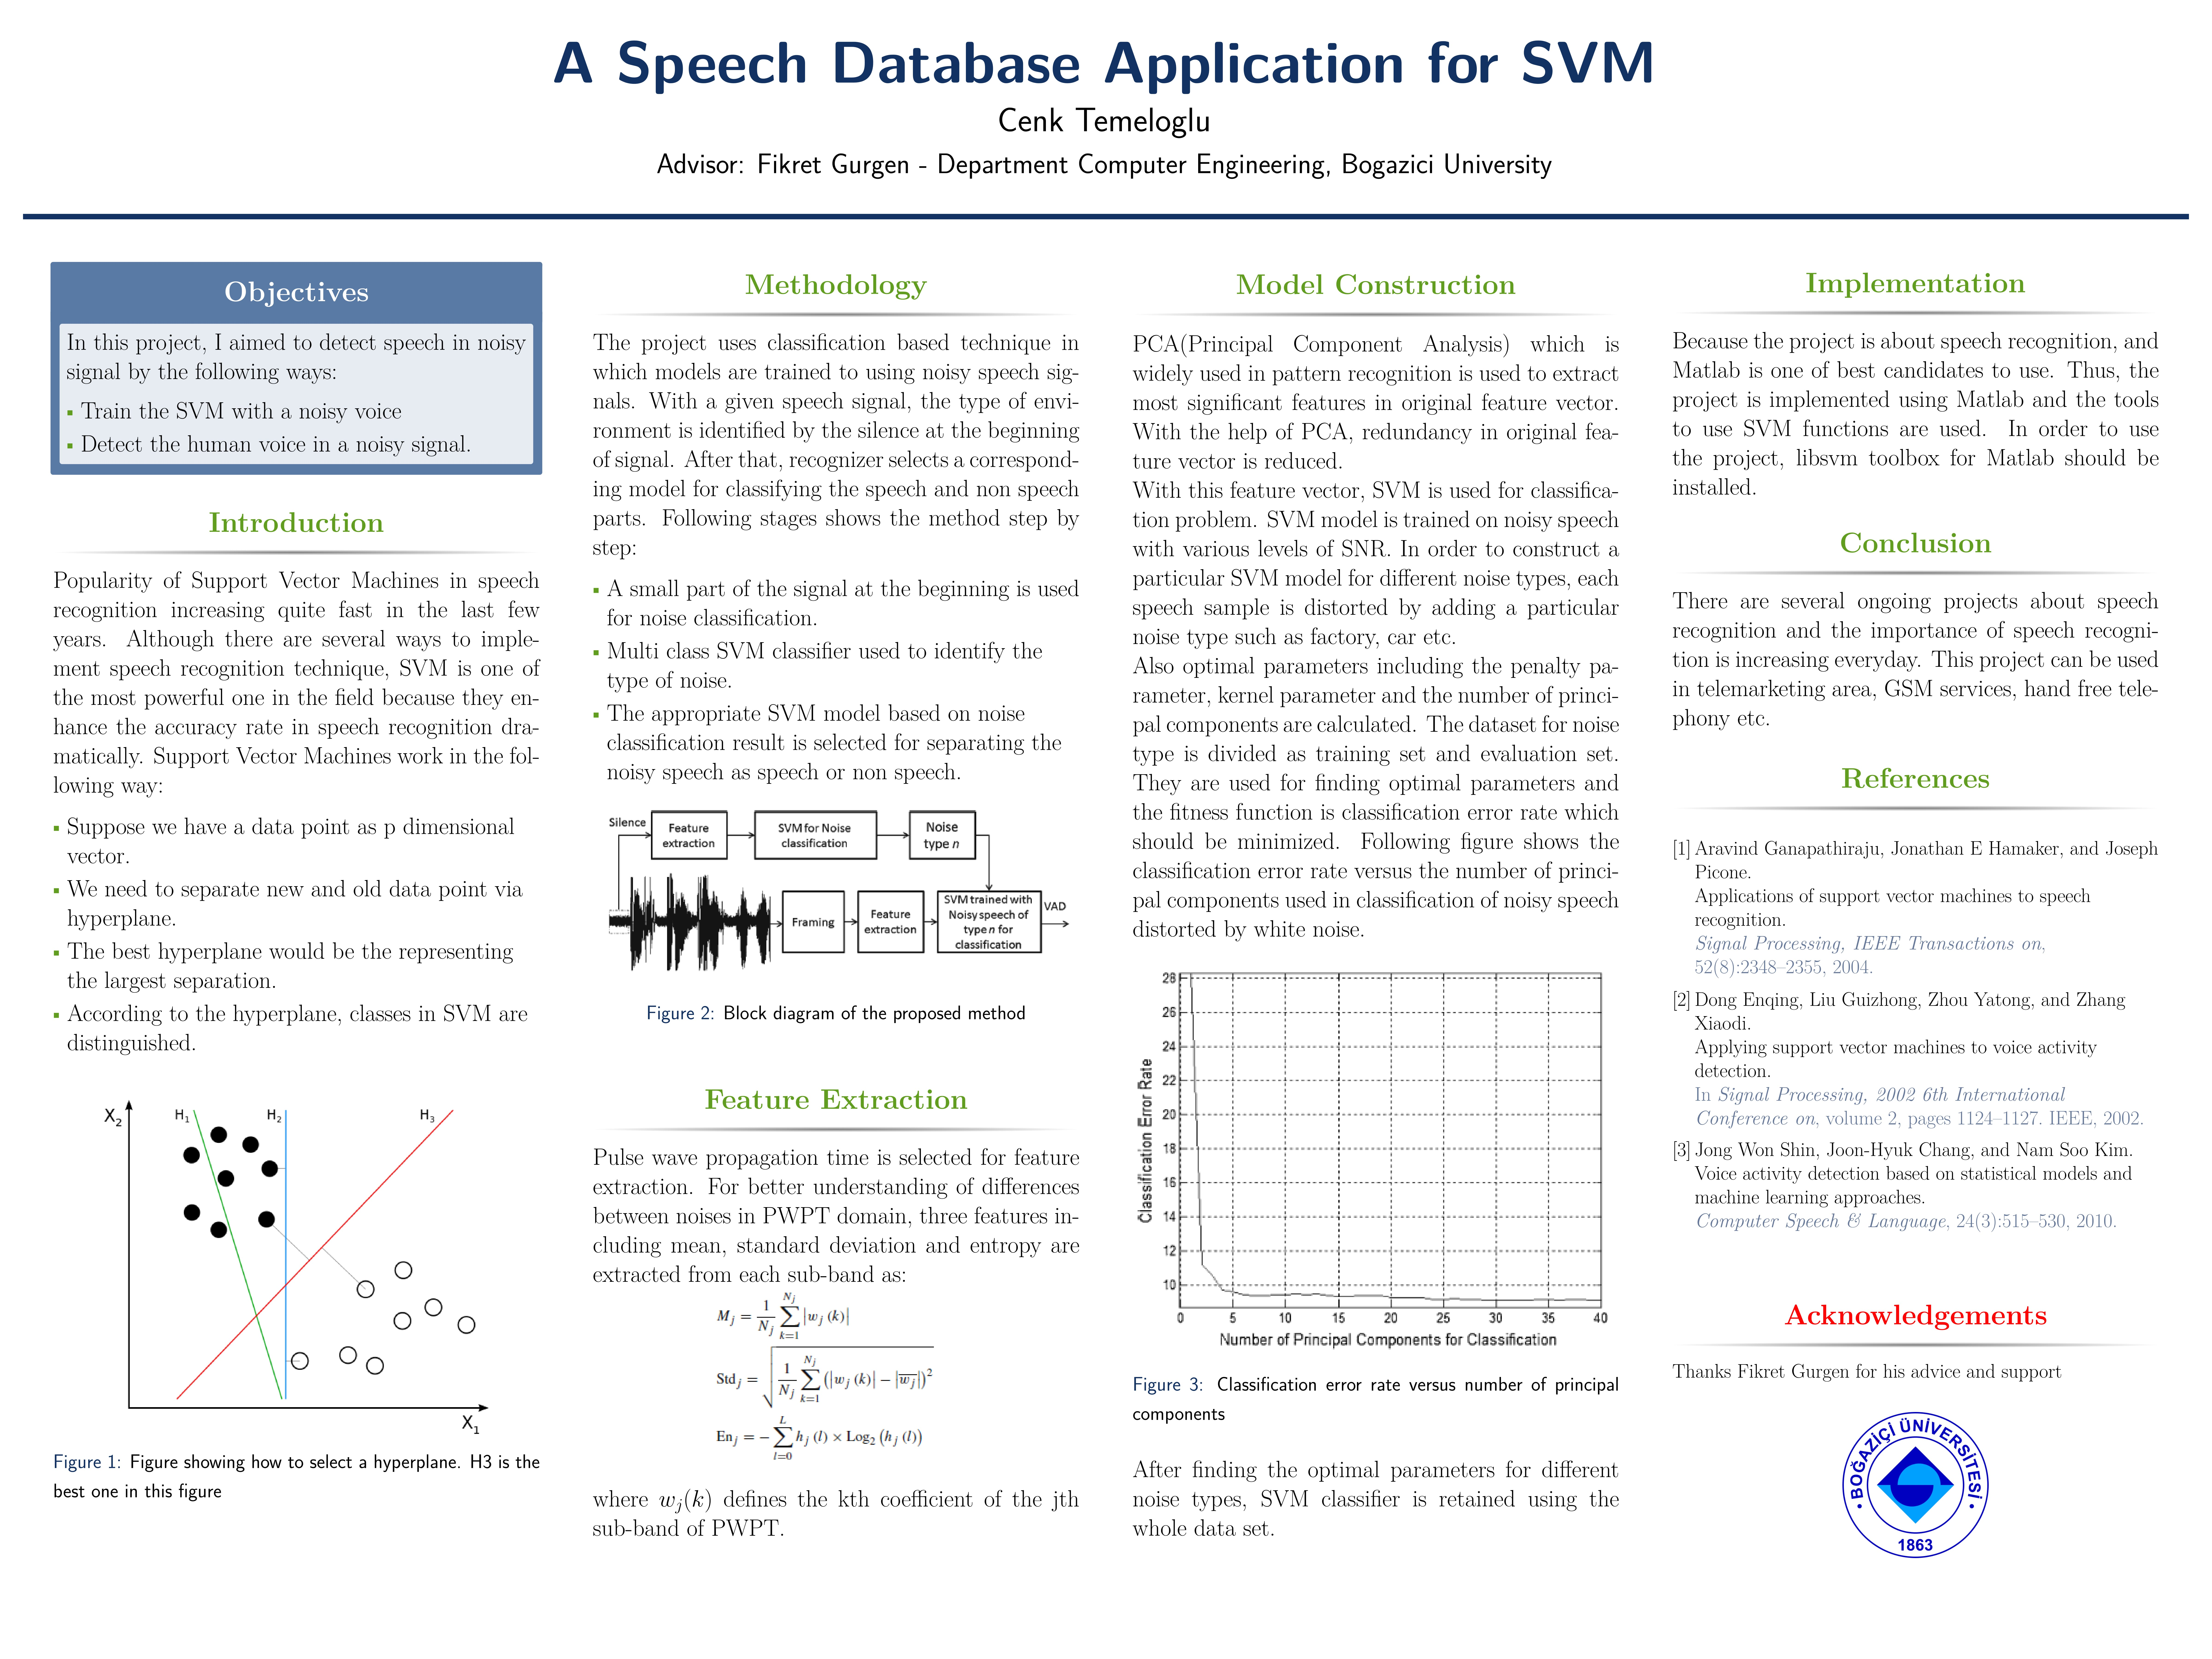 A Speech Databse Application for SVM | CmpE WEB